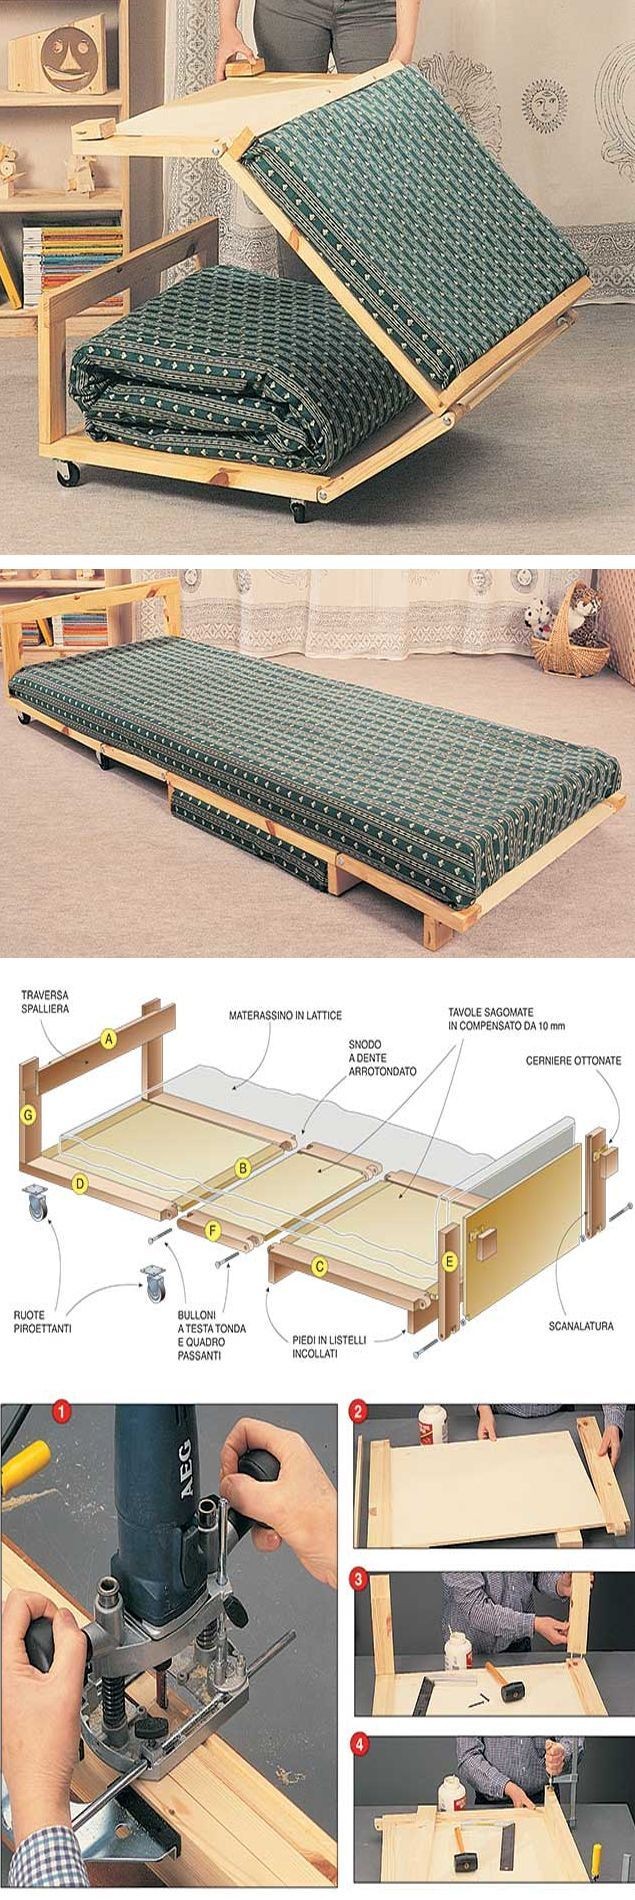 Make your own Barnwood in nine easy steps to building professionals